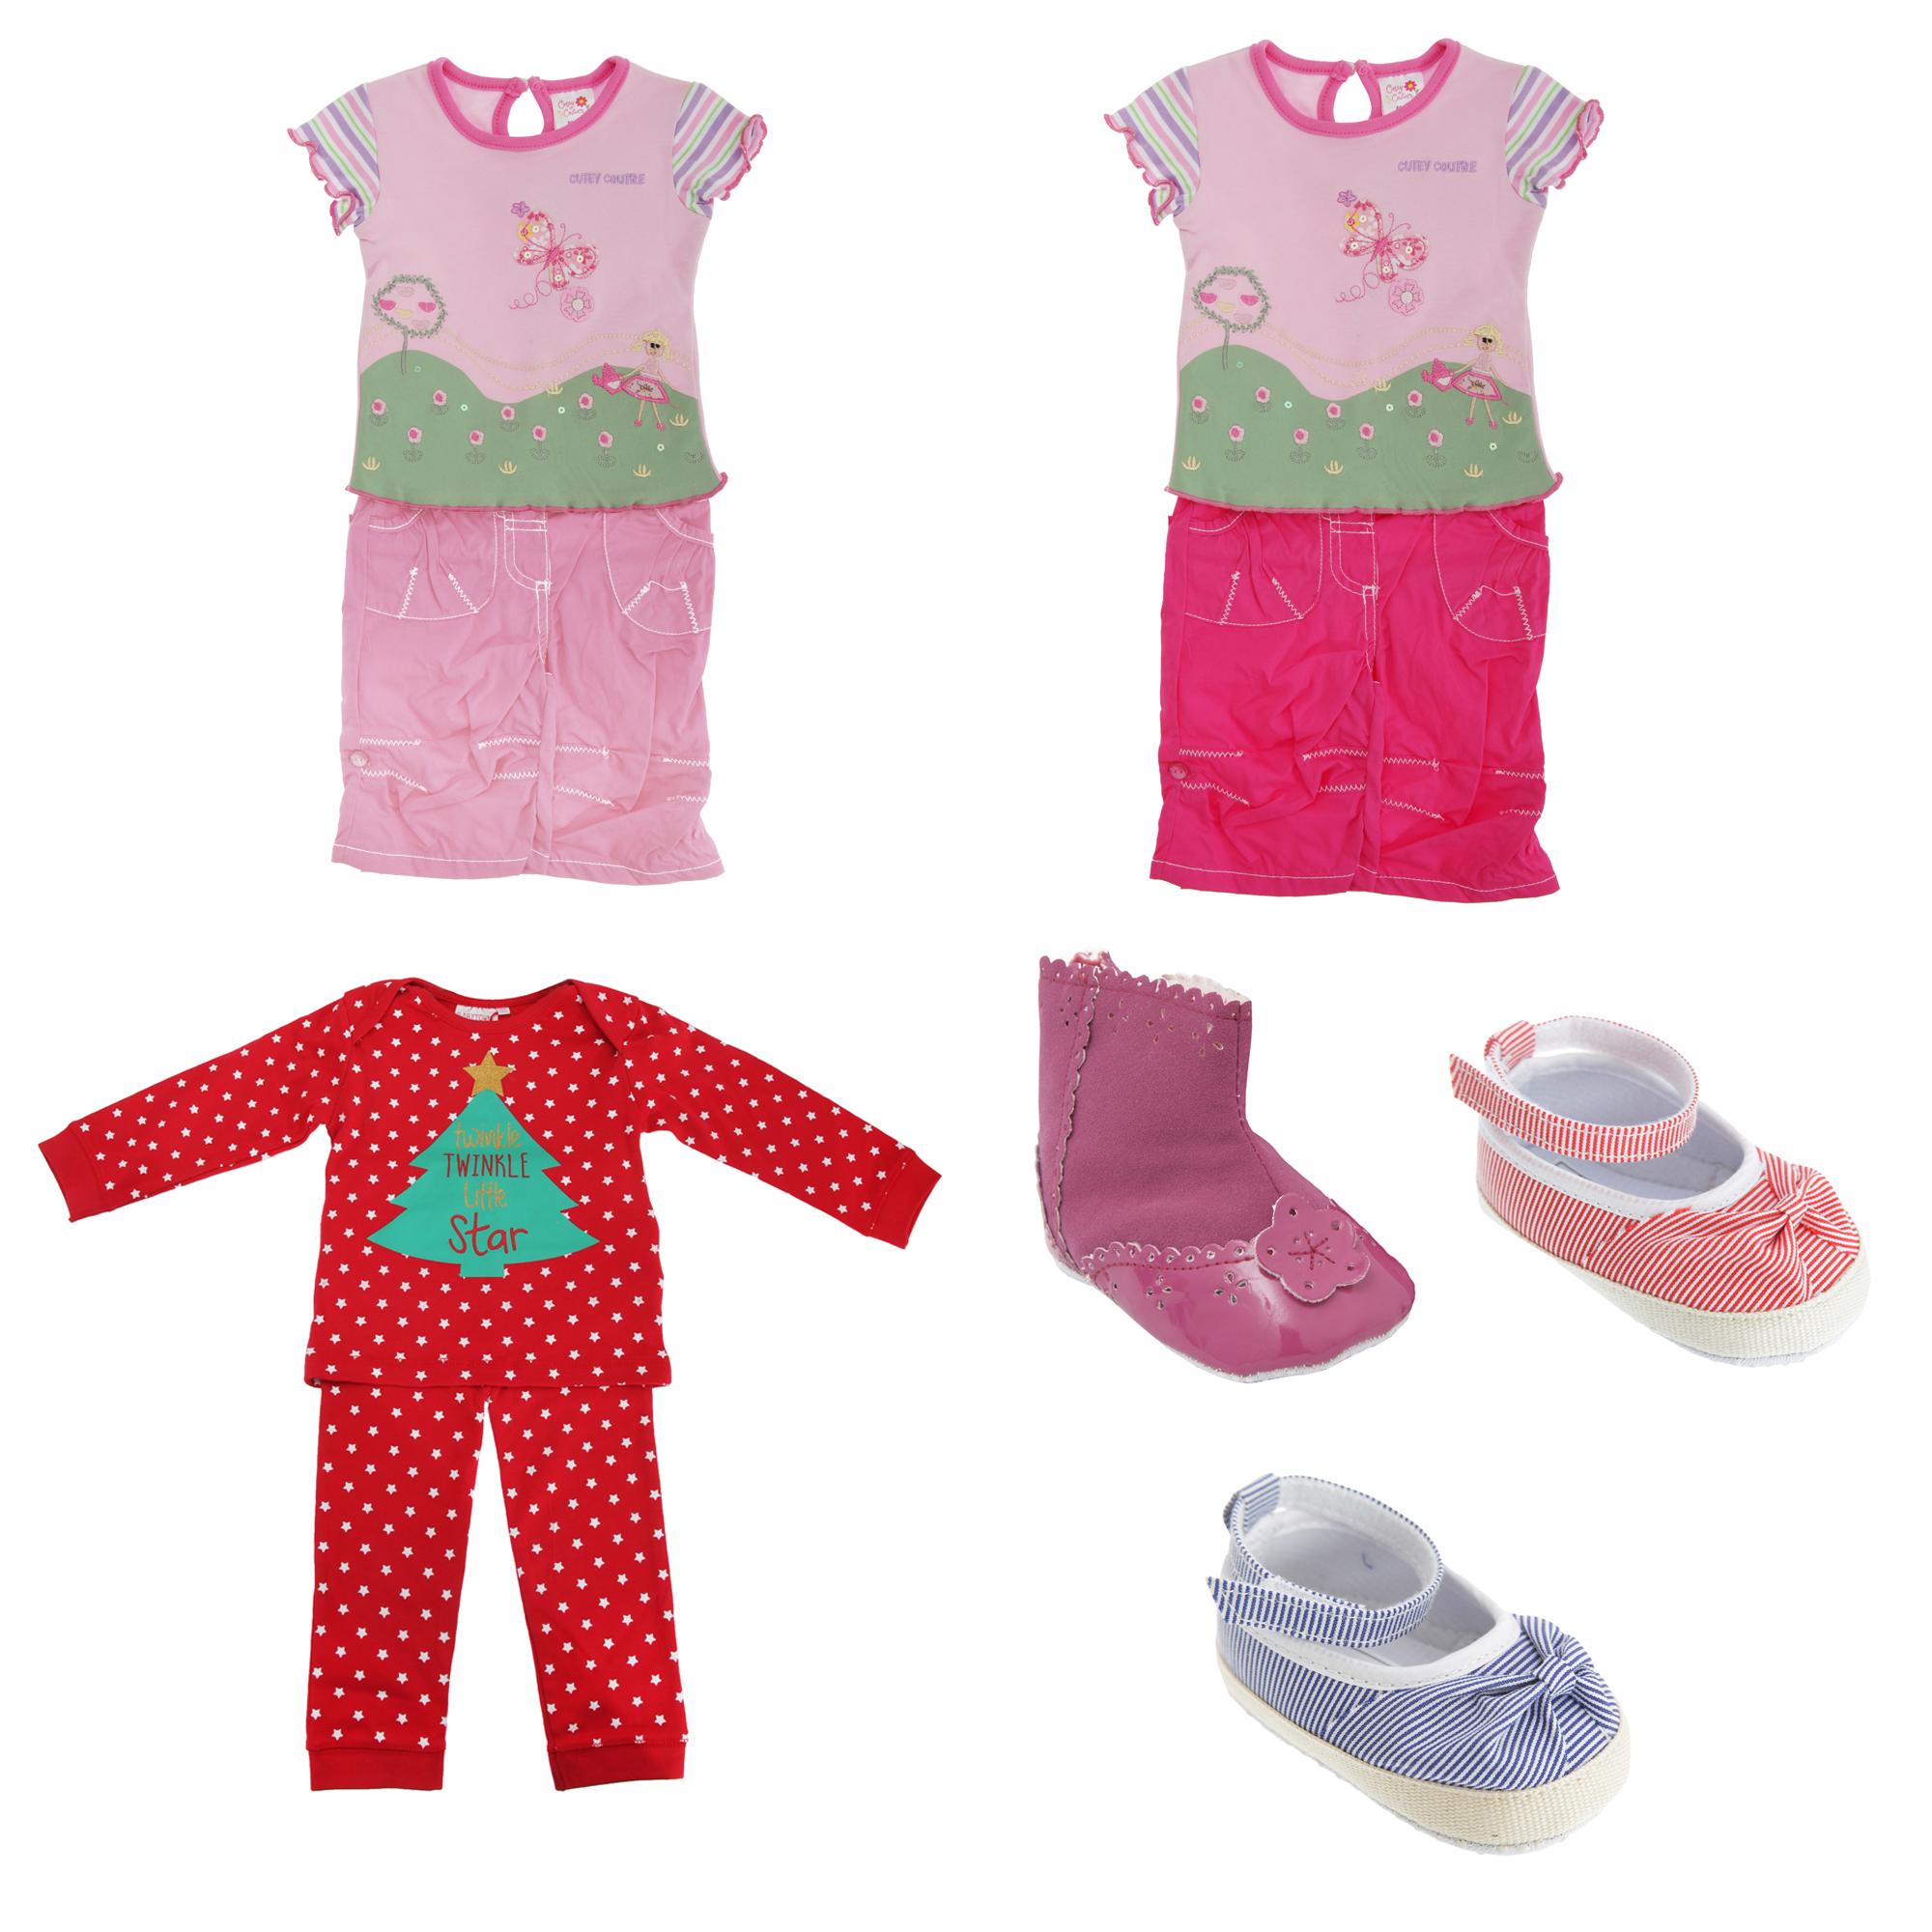 Bulk, Wholesale, Job Lot, Clearance Assorted Clothing (Dresses, Tops, Footwear And More) (Box 9) (Assorted Baby Clothing (Set of 46))